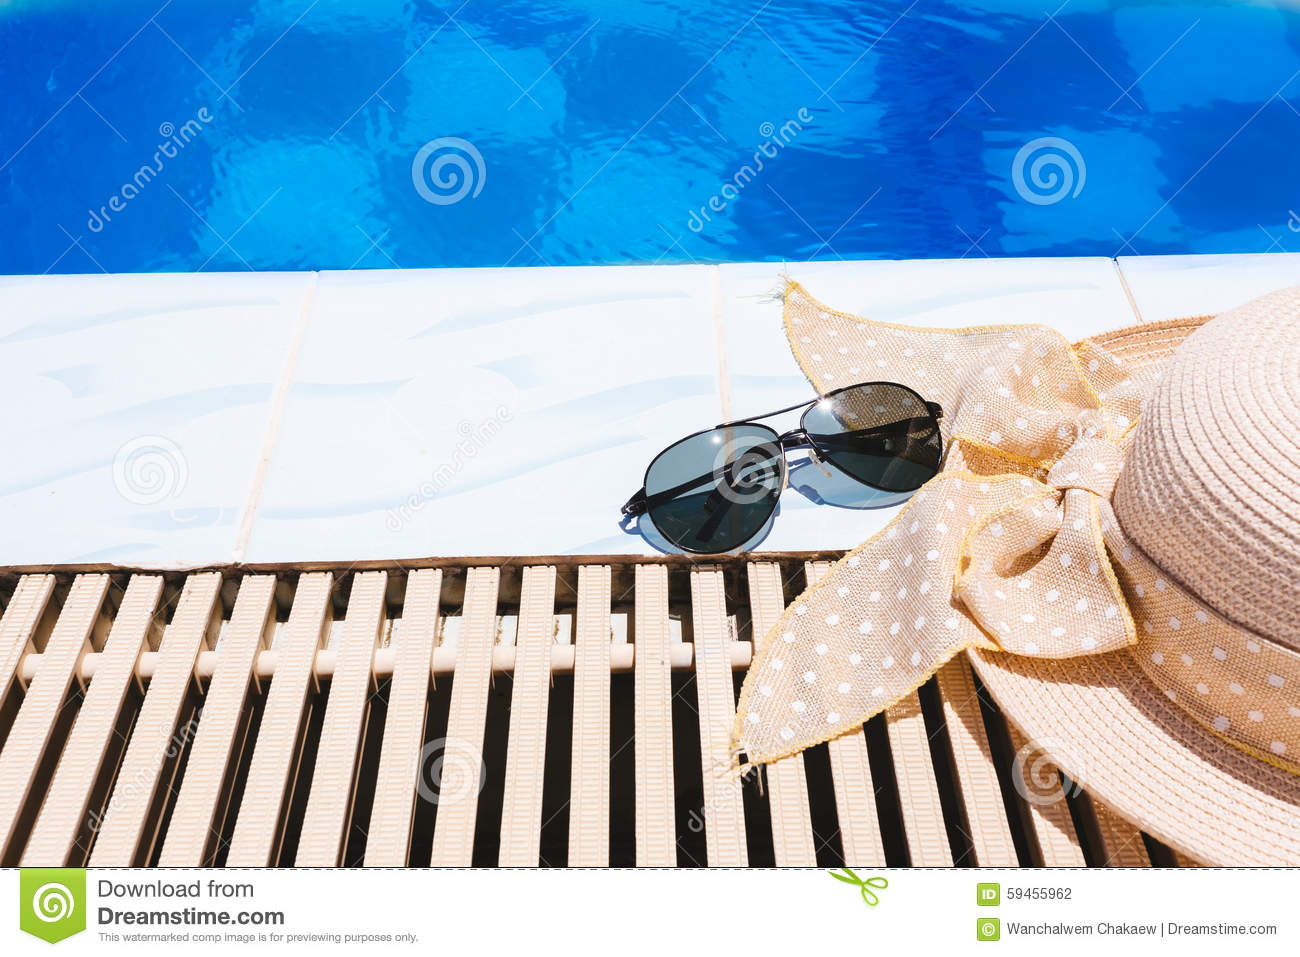 Beach Accessories By The Swimming Pool Stock Photo - Image ...